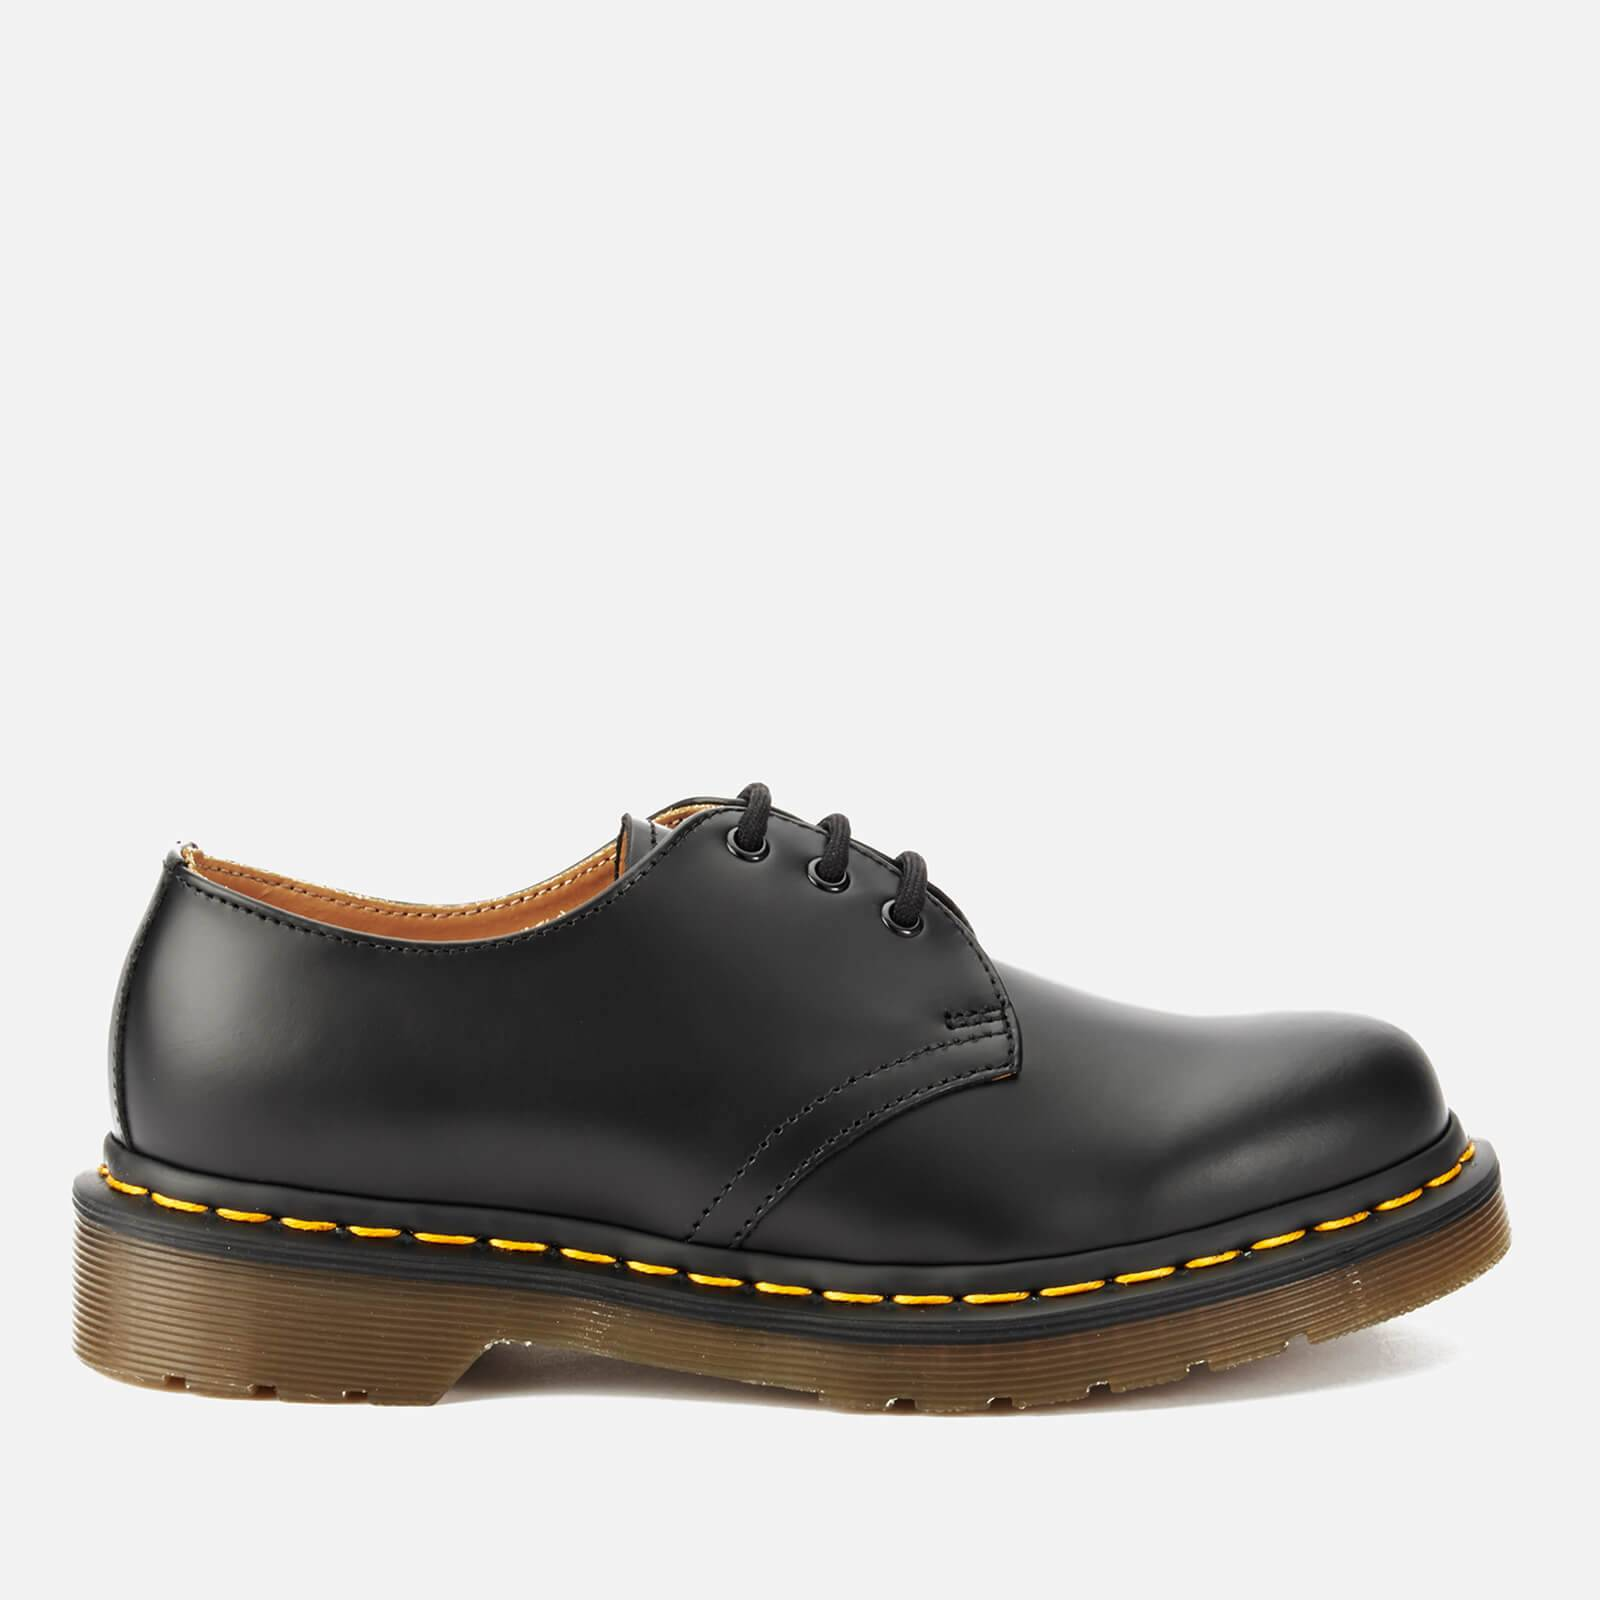 Dr. Martens 1461 Smooth Leather 3-Eye Shoes - Black - UK 10